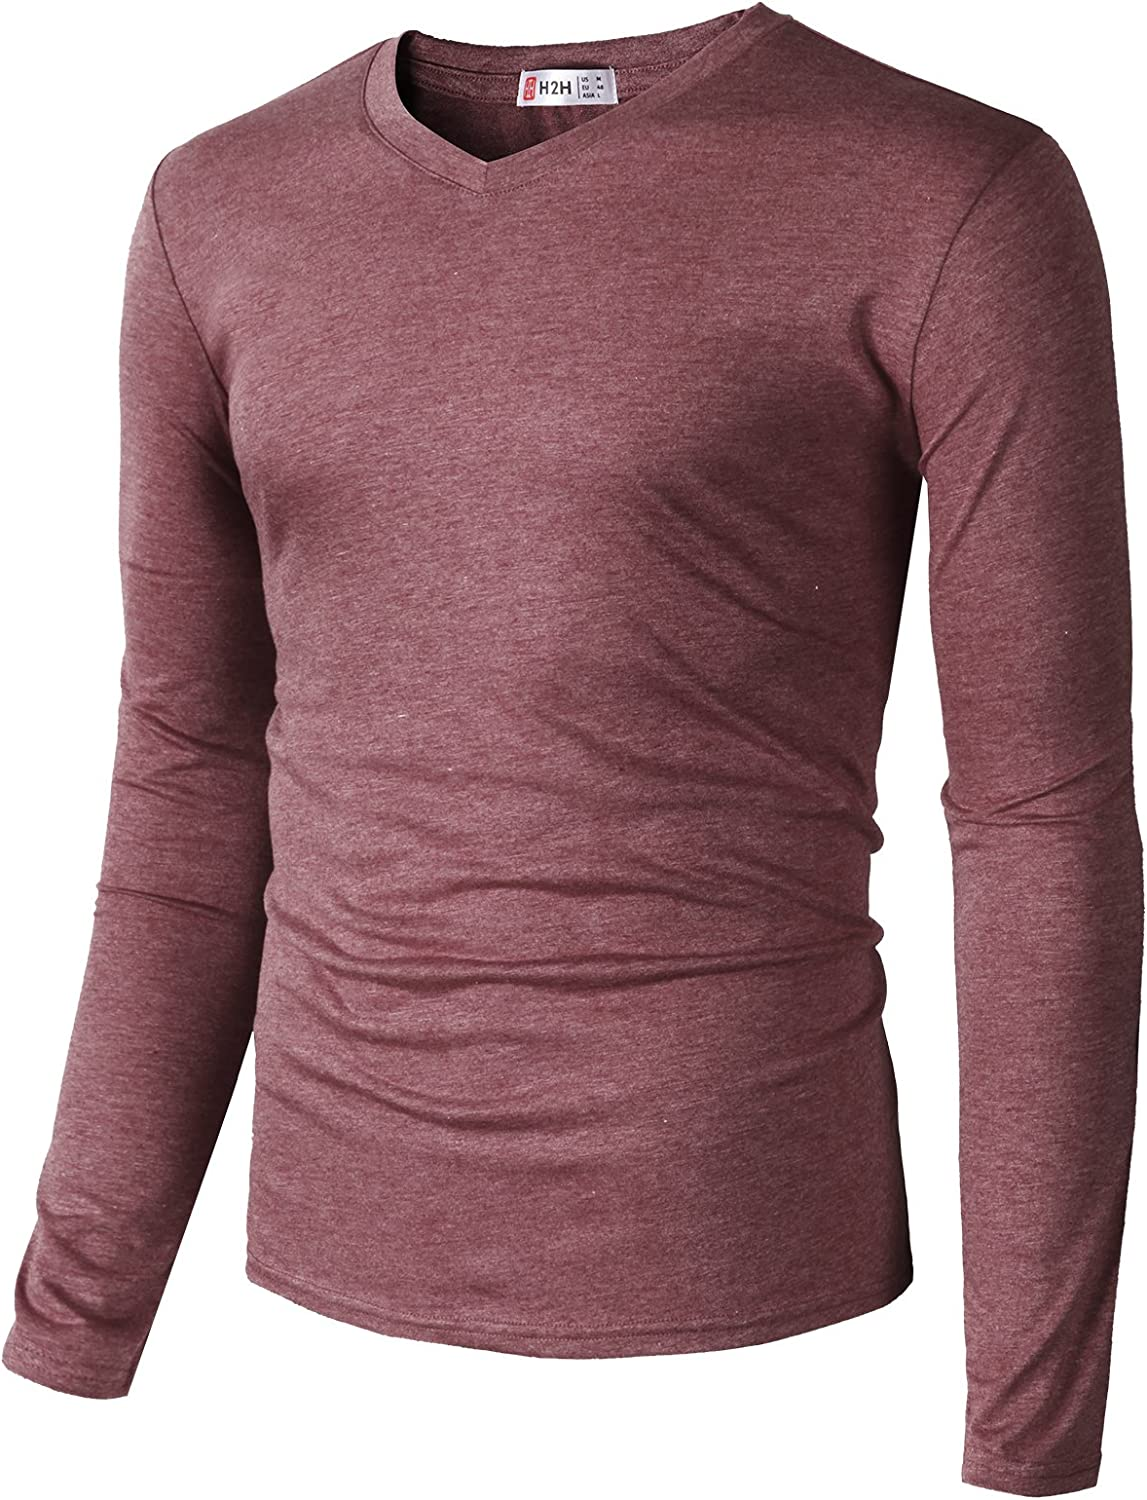 H2H Men Casual Slim Fit T-Shirt Long Sleeve Spandex Blended Henely T-Shirt